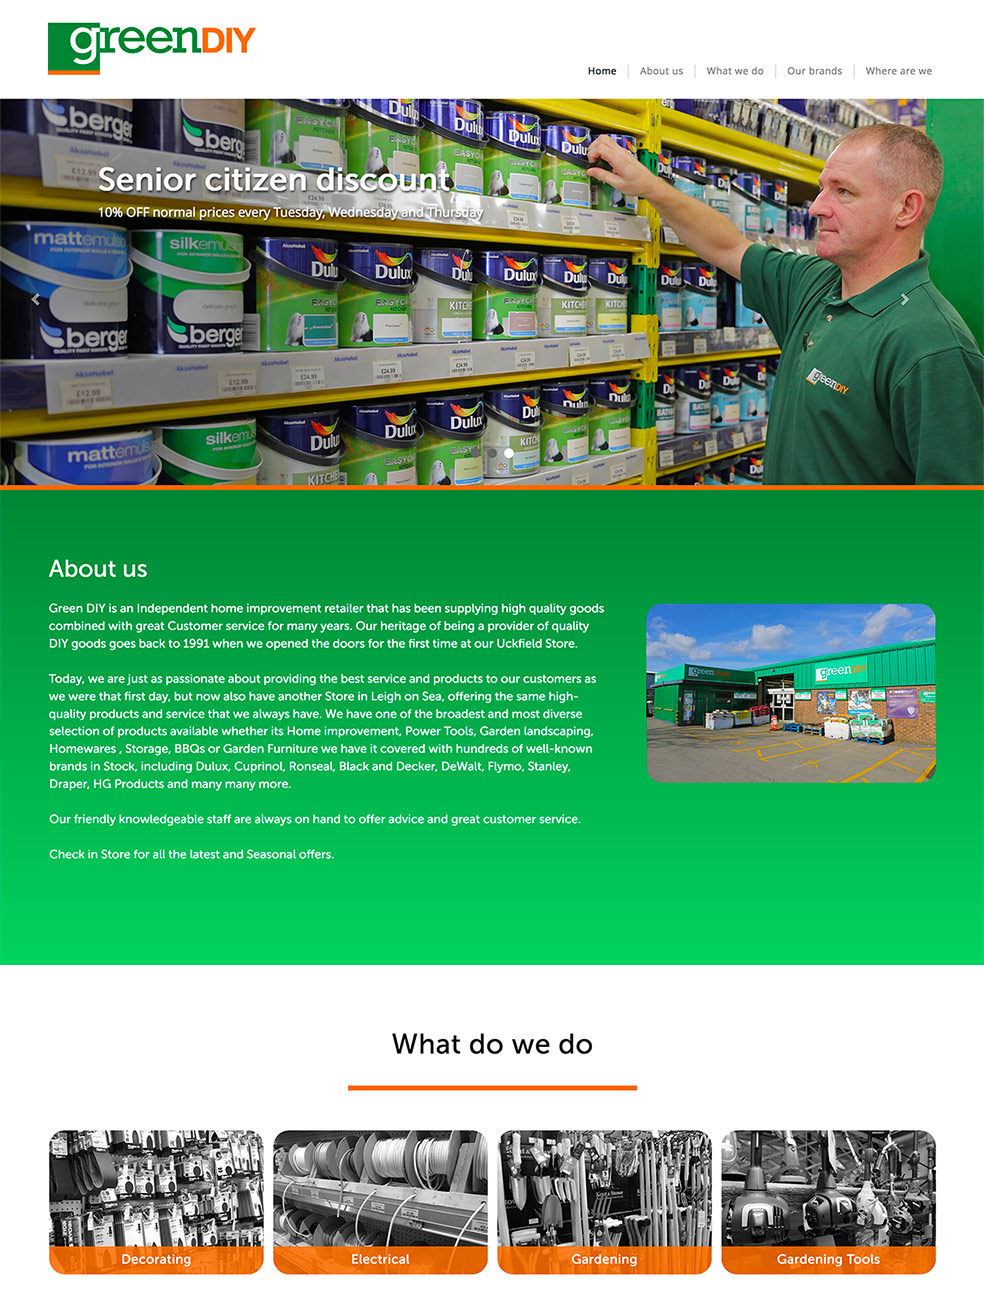 green diy uckfield UK Website development design